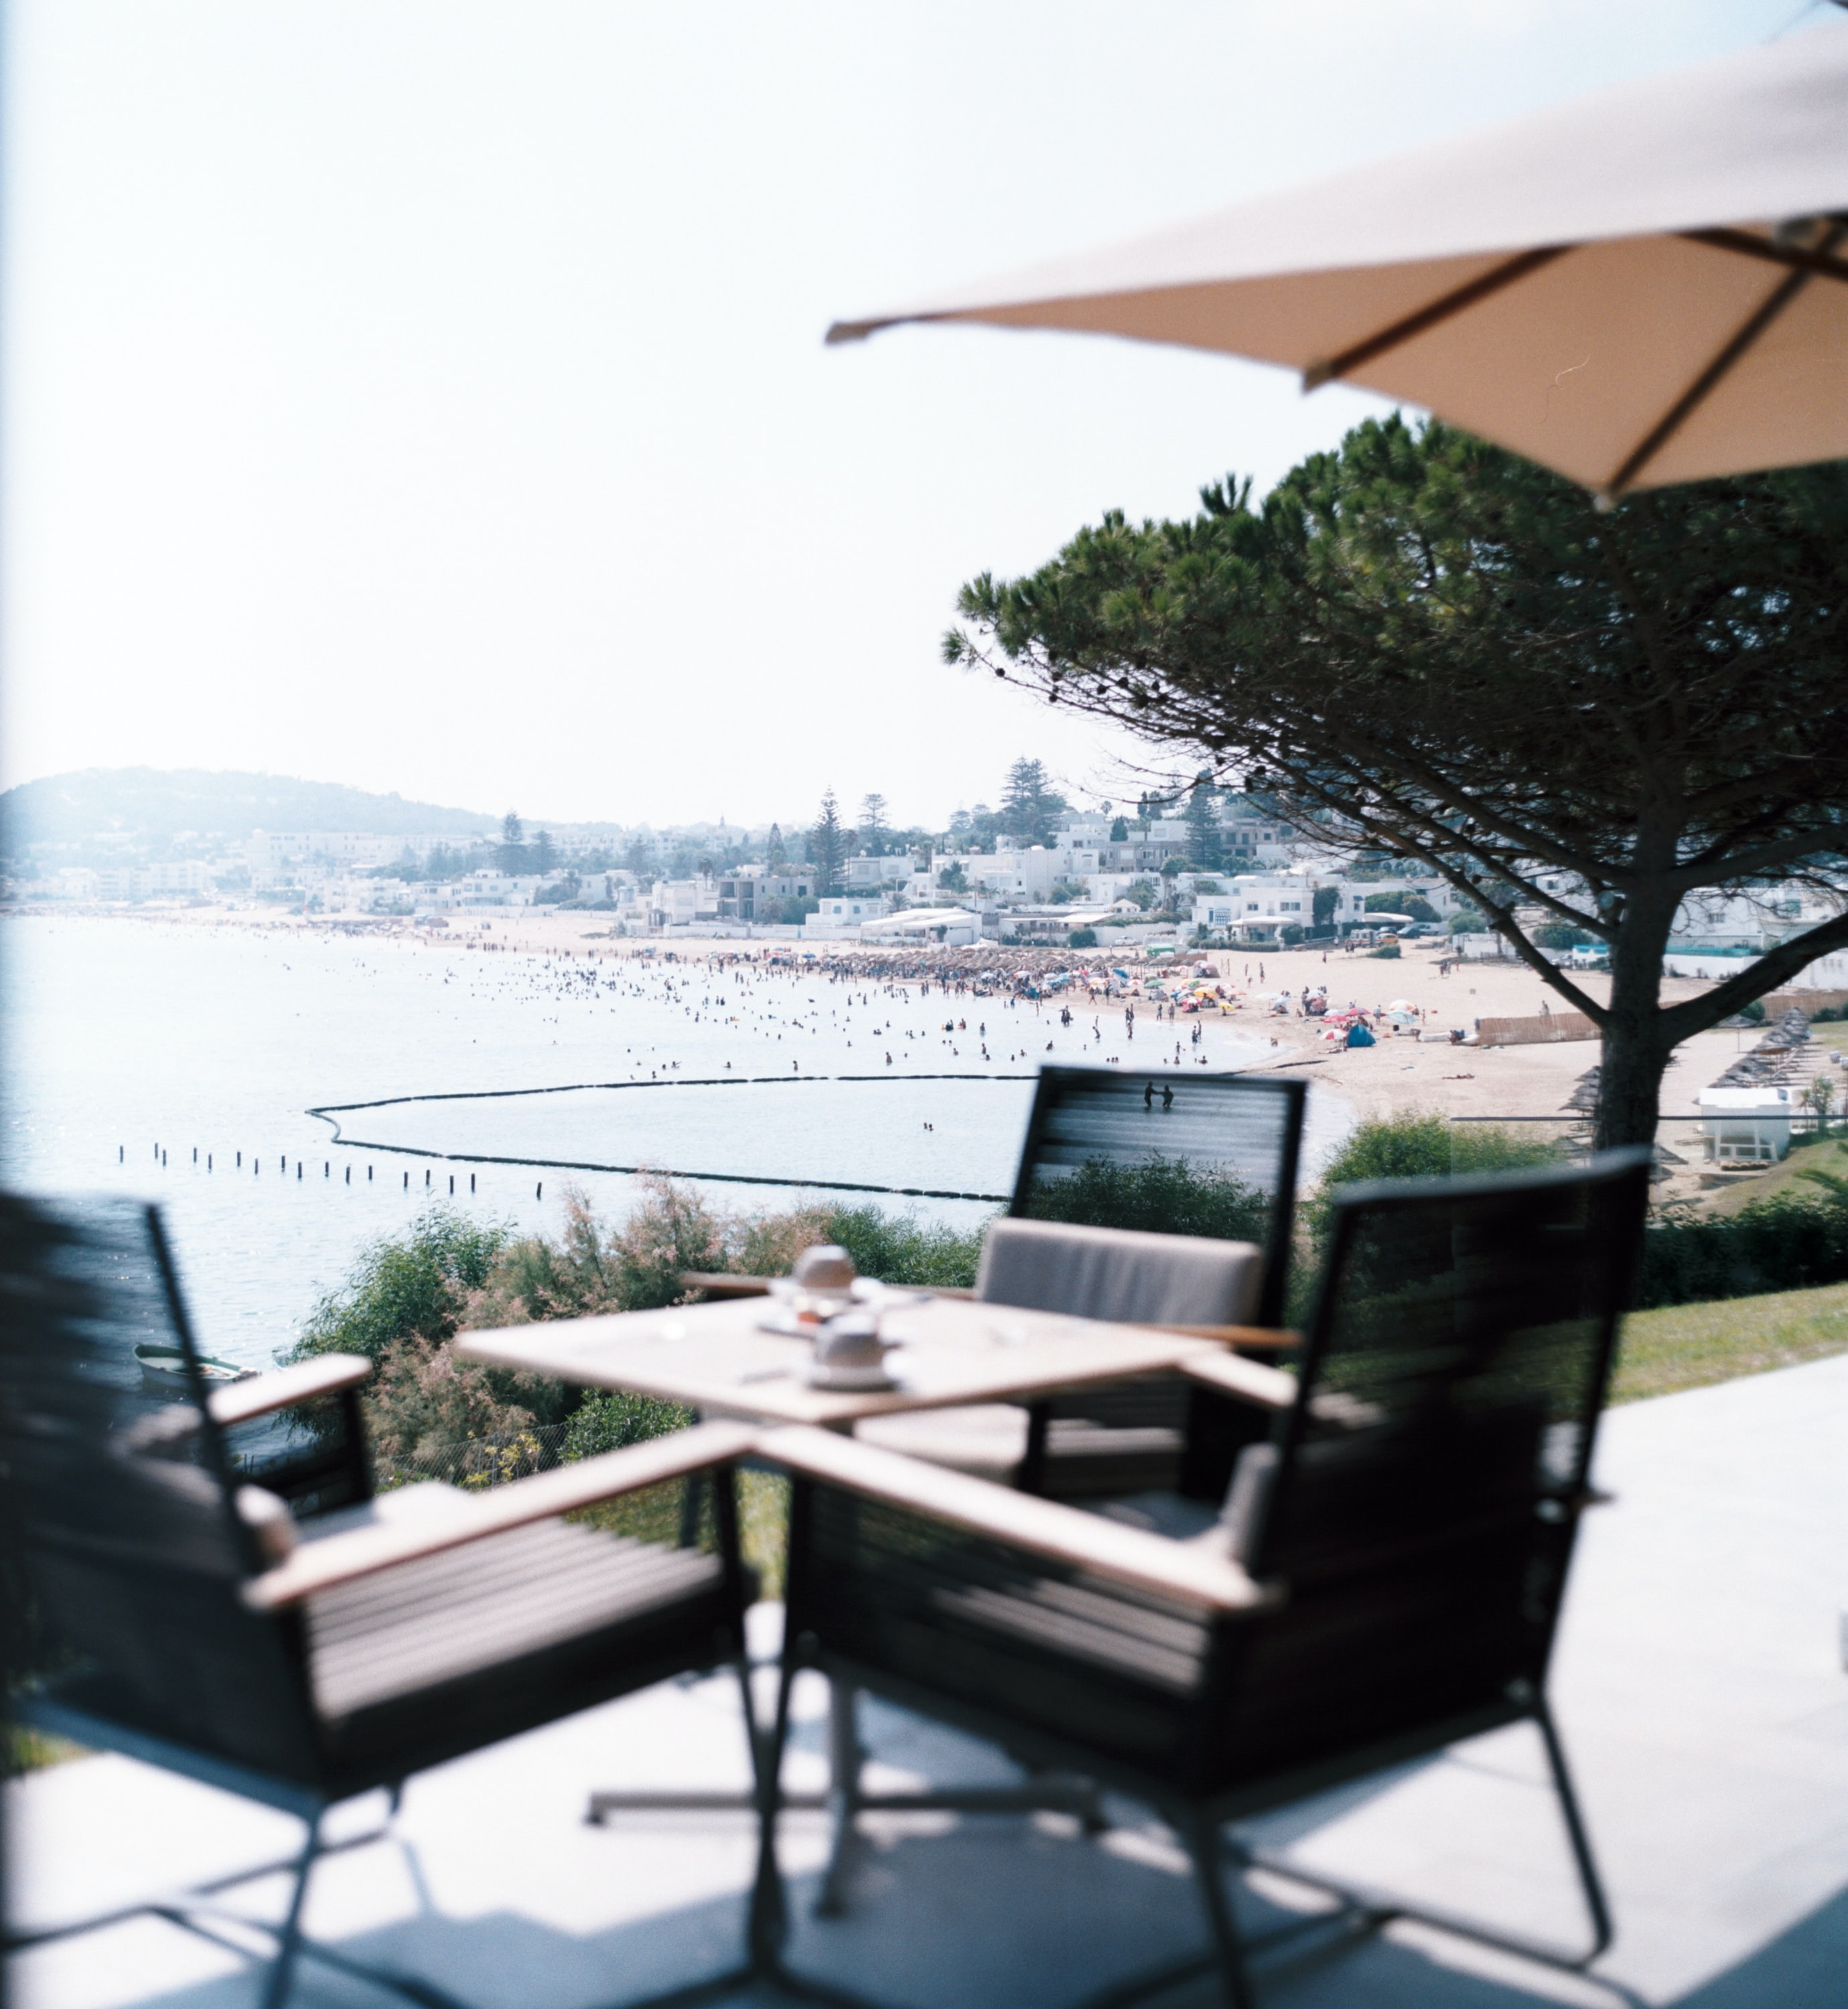 A patio with three chairs at a square table with a view on a crowded beach and a coastal town